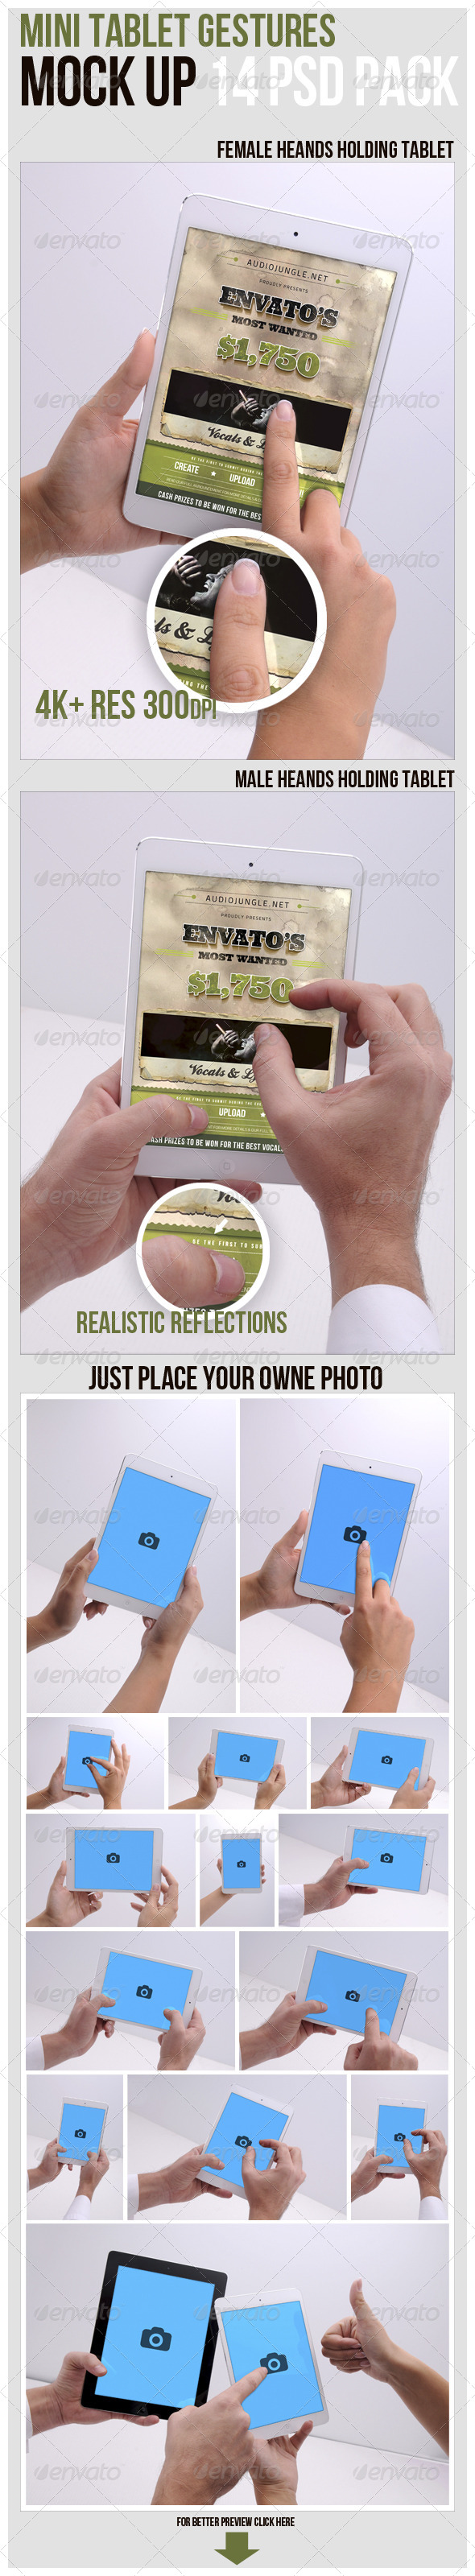 GraphicRiver Mini Tablet Gestures Mockup 6038017